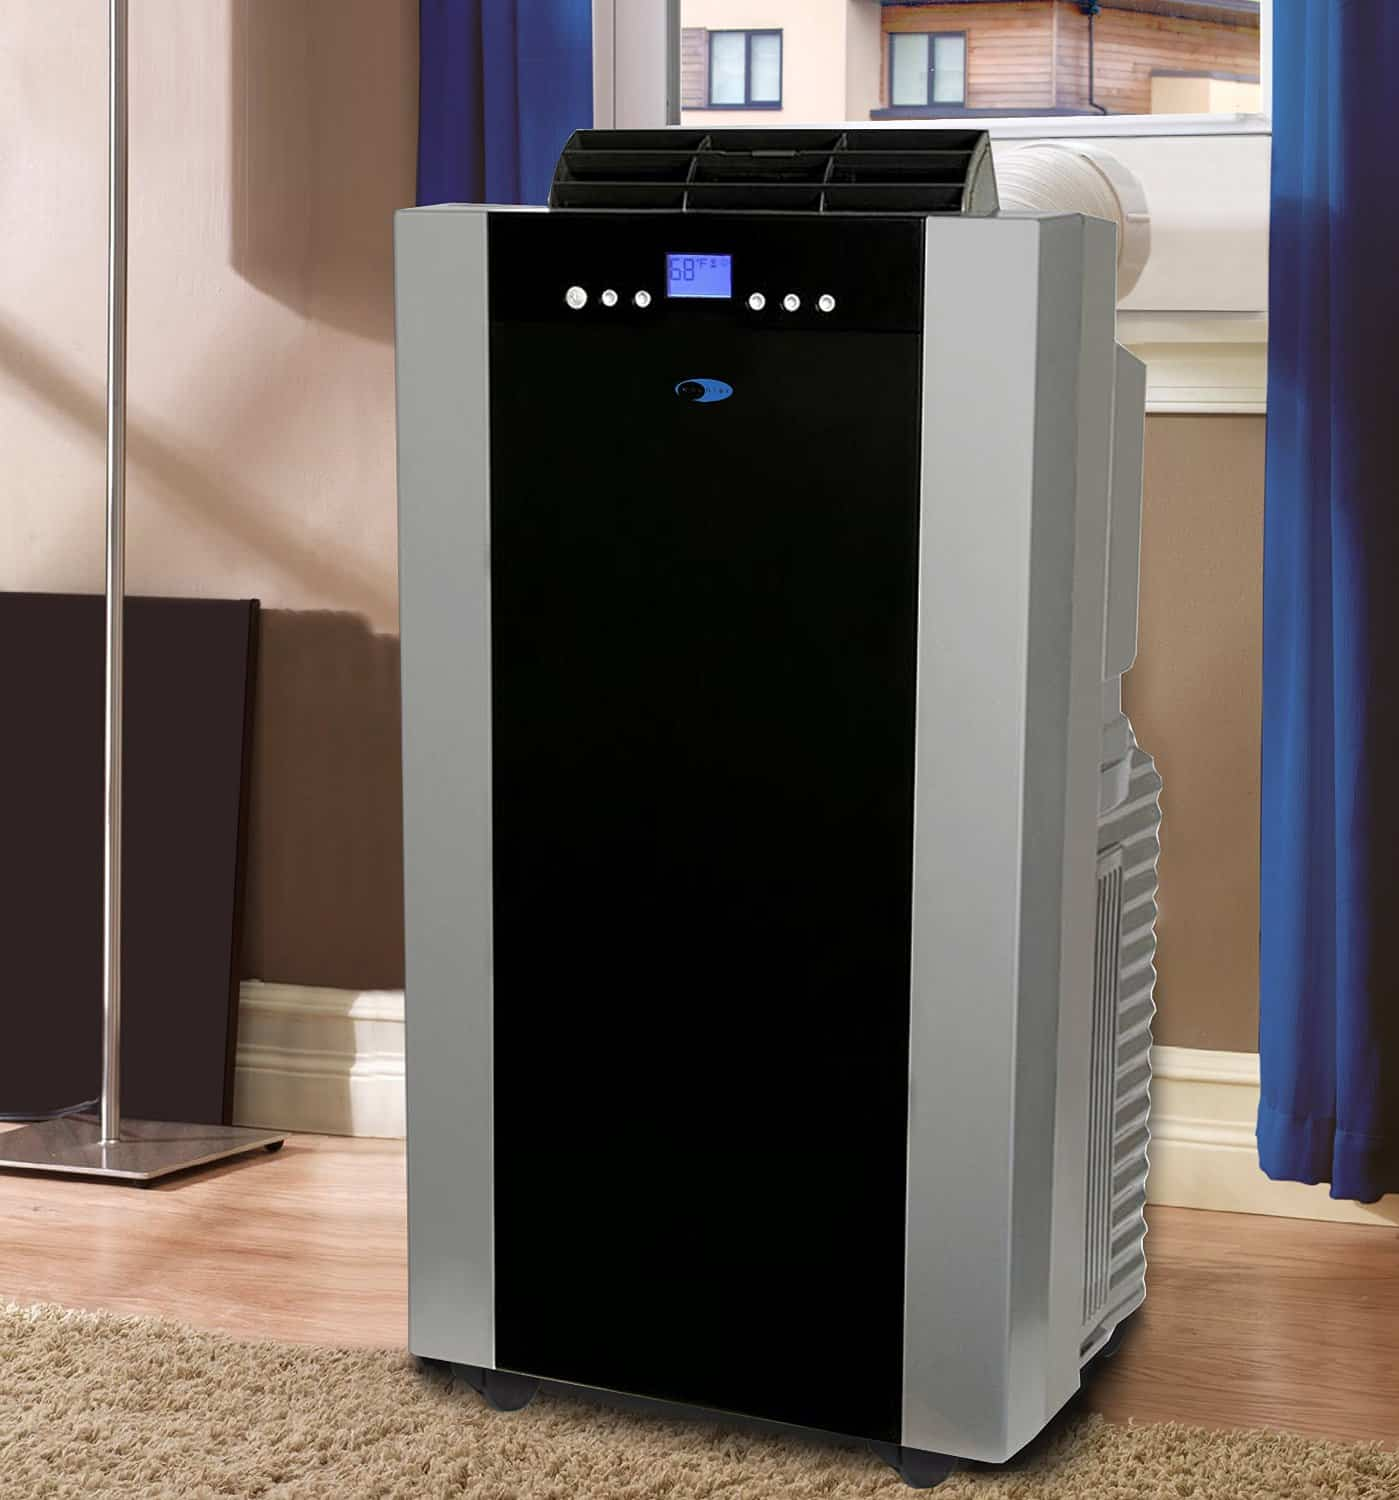 #2C3F9F Best Whynter 14 000 BTU Dual Hose Portable Air Conditioner  Best 9863 14000 Portable Air Conditioner photos with 1399x1500 px on helpvideos.info - Air Conditioners, Air Coolers and more